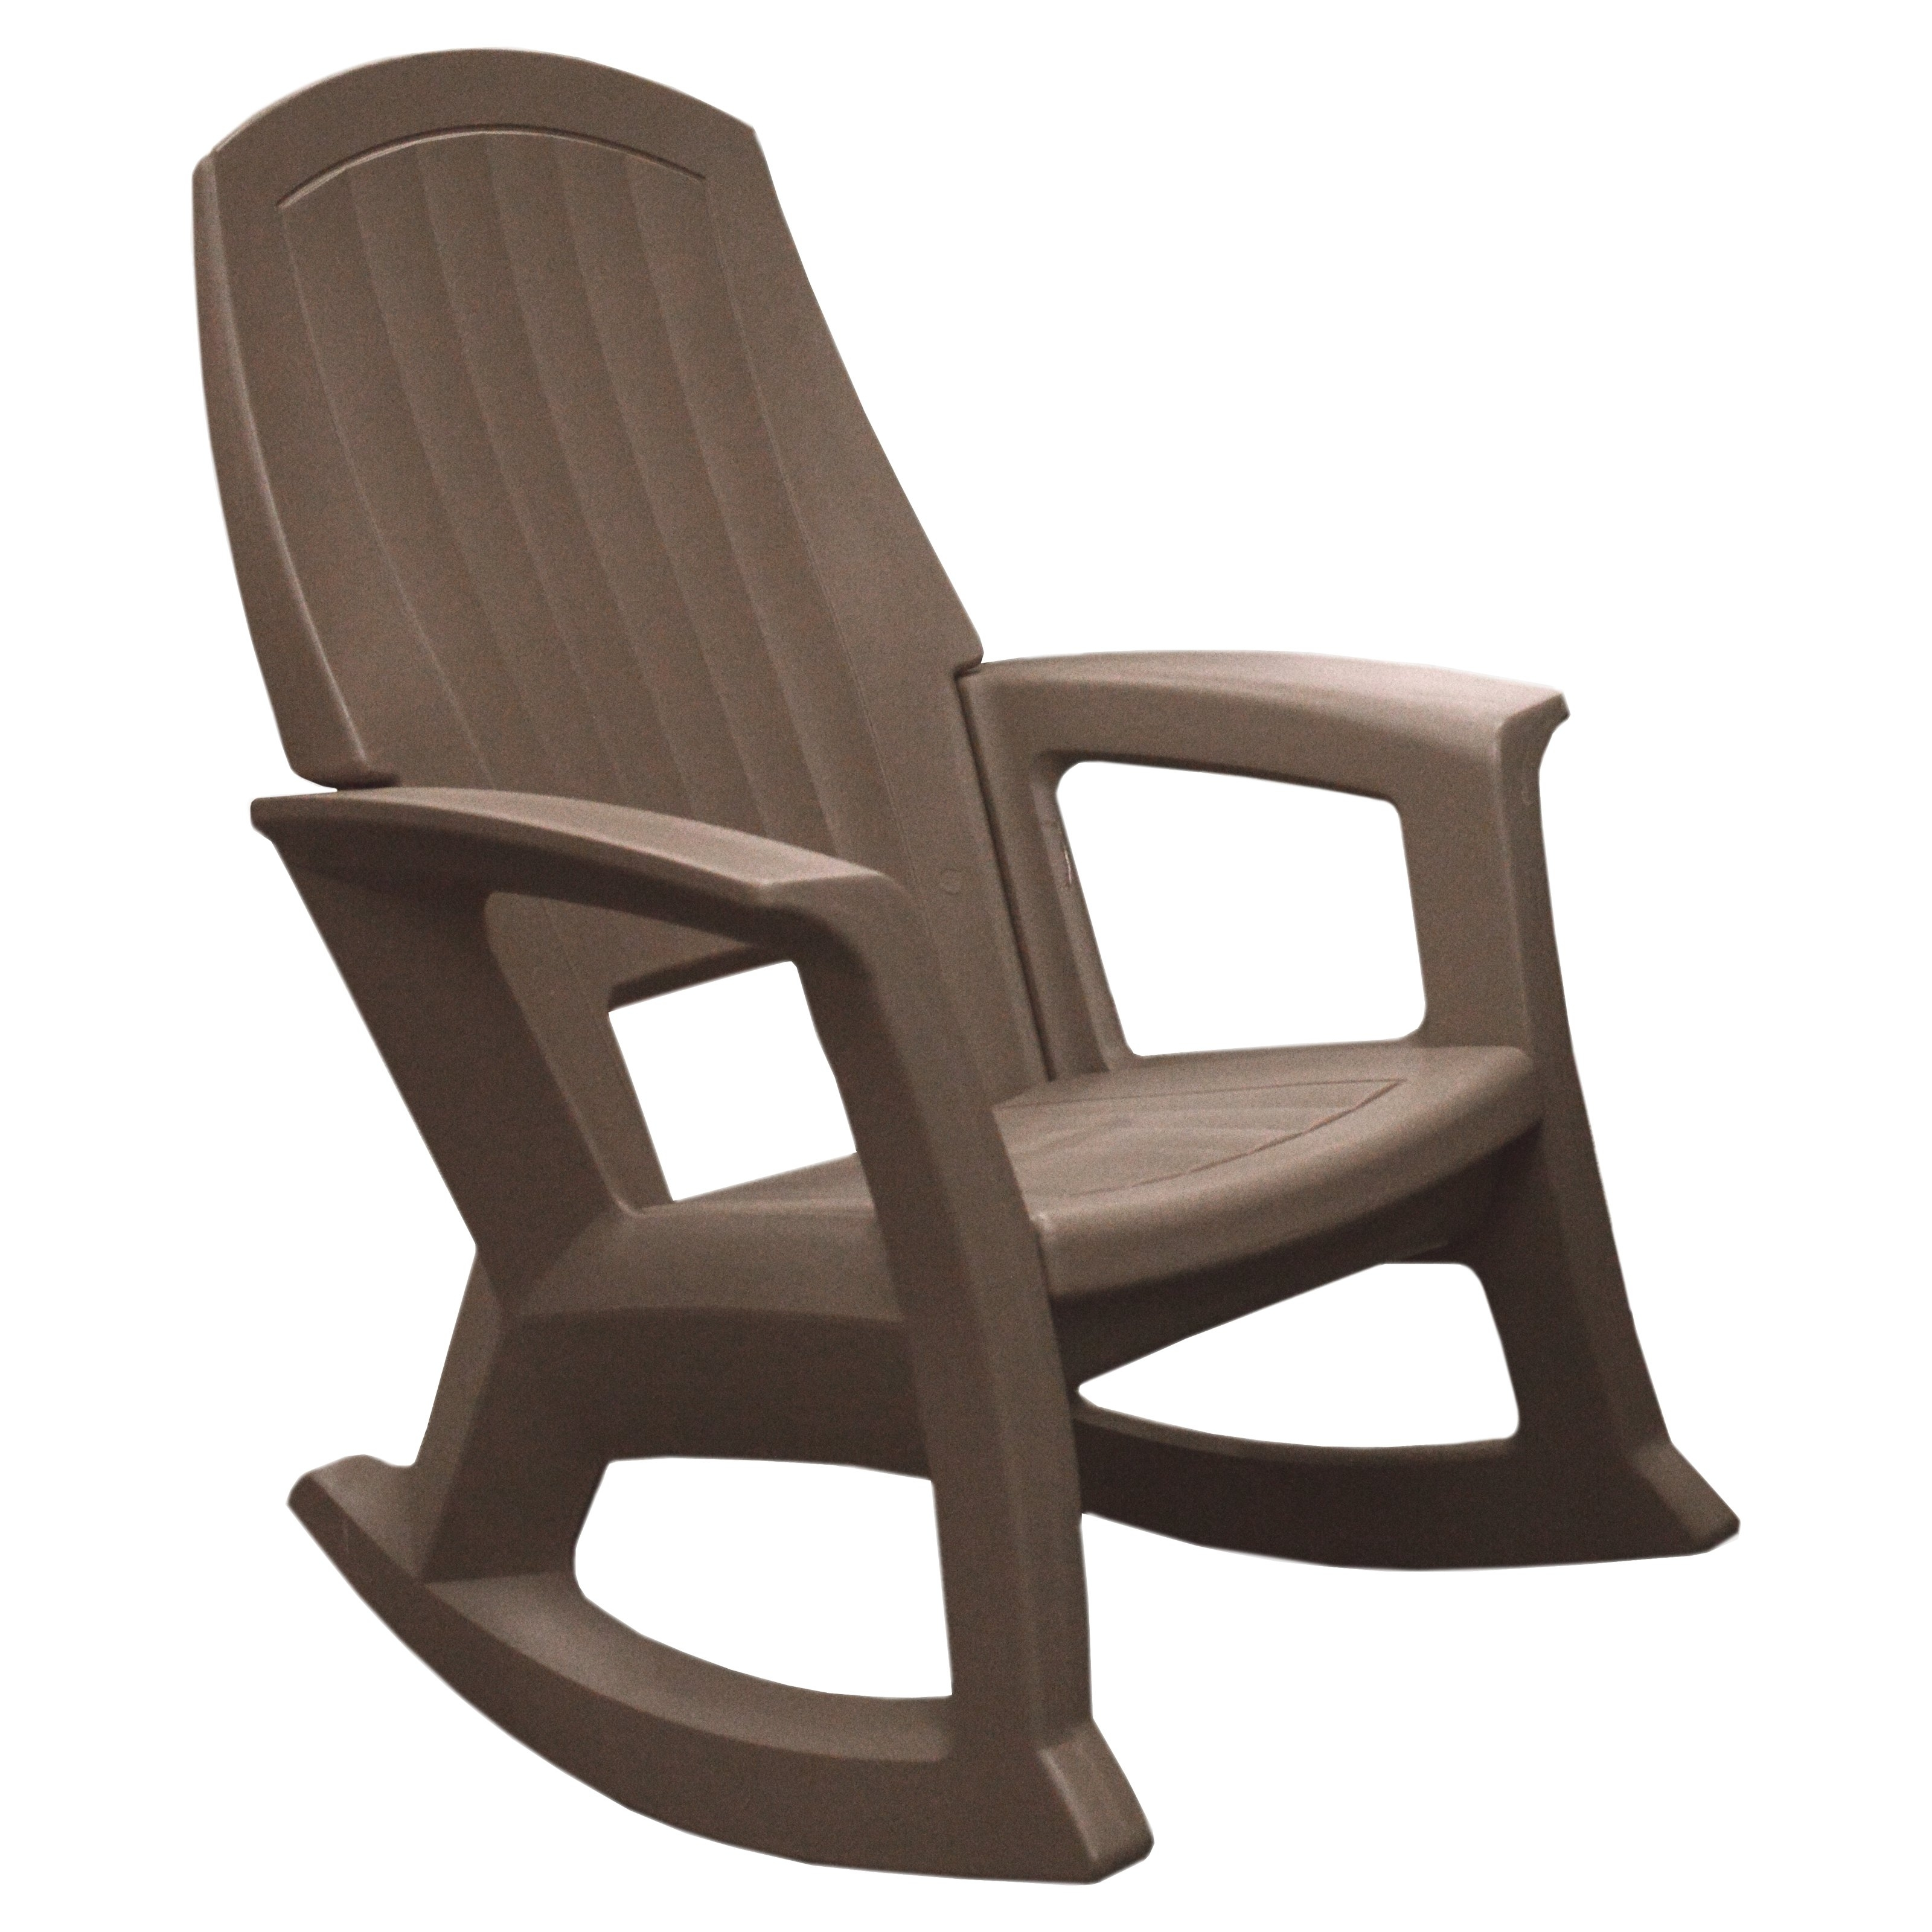 Best And Newest Semco Outdoor Patio Resin Rocking Chair – Outdoor Designs With White Resin Patio Rocking Chairs (View 1 of 15)